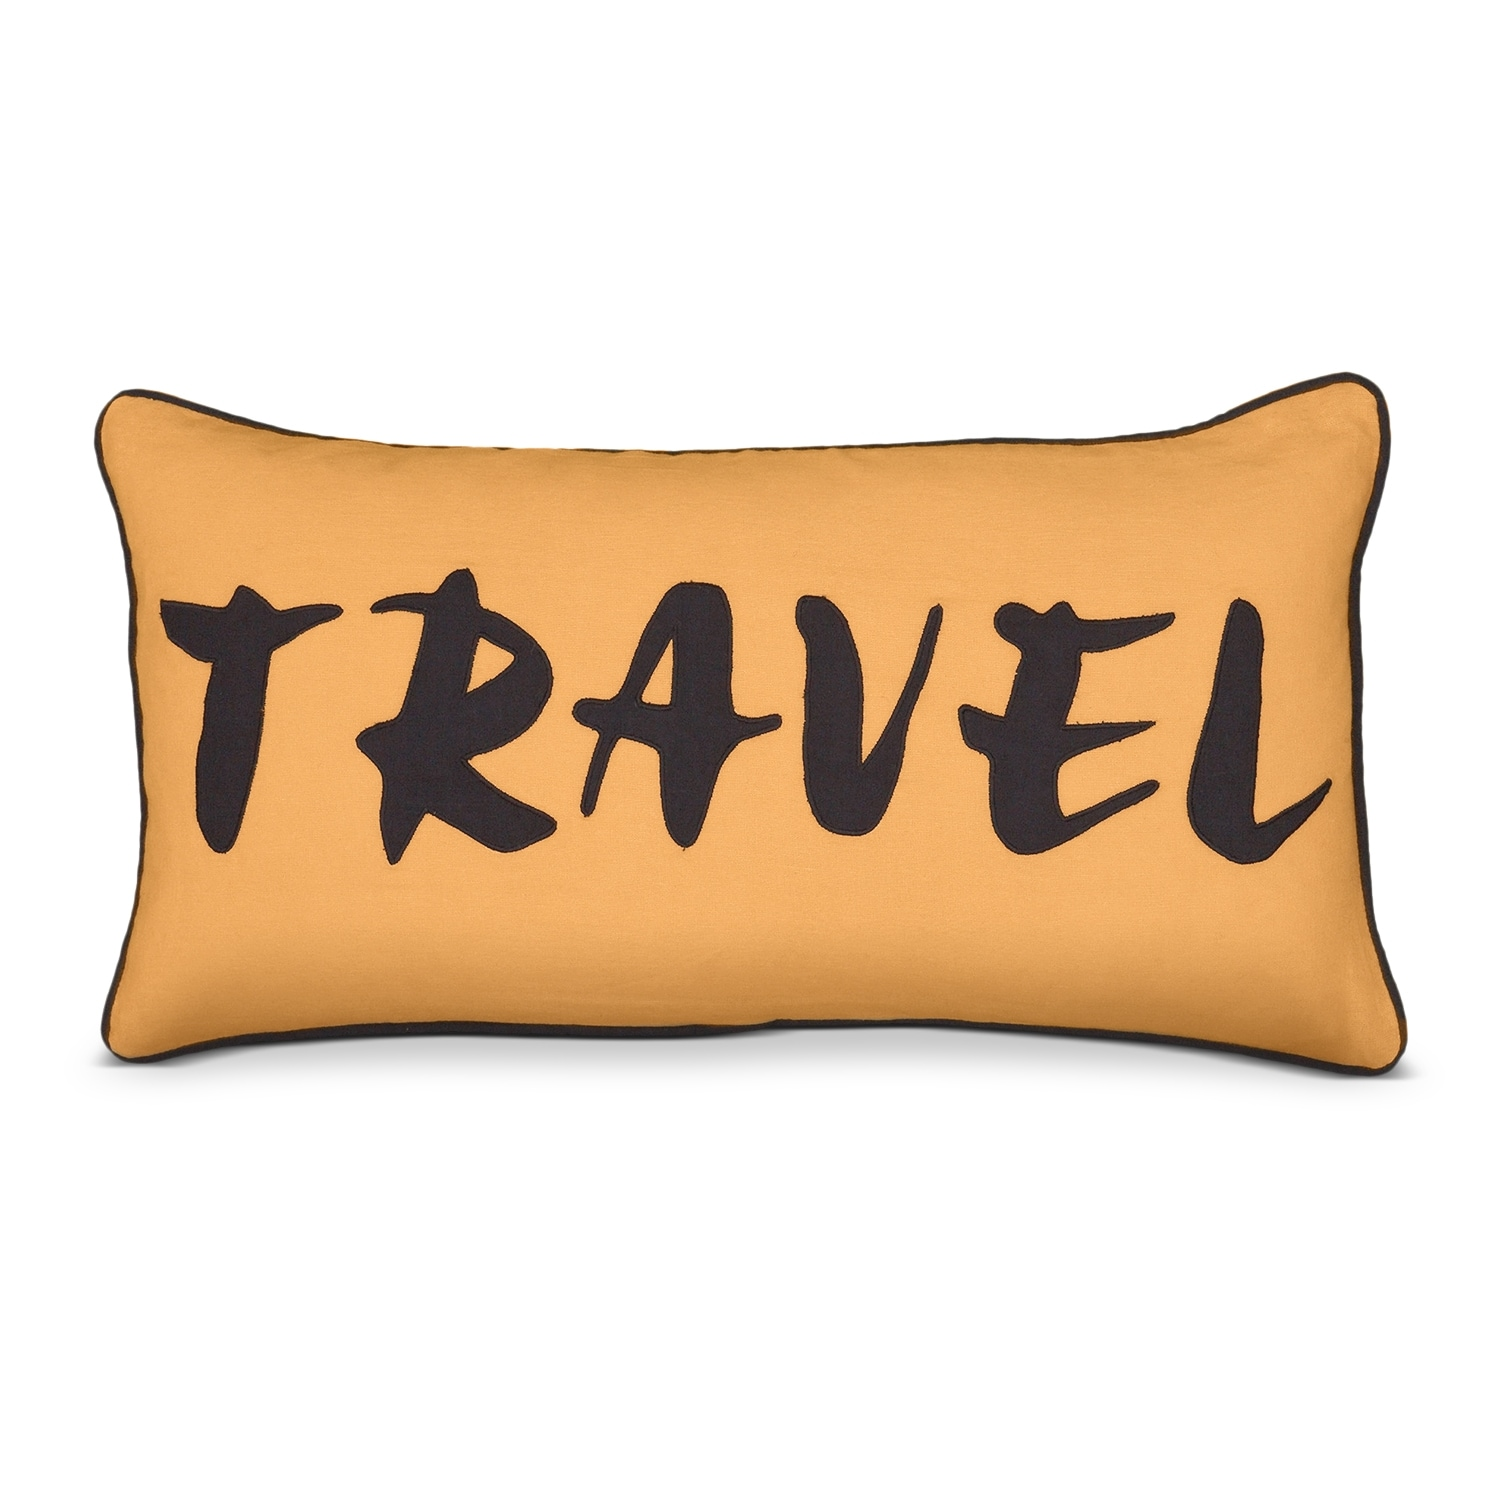 Accent and Occasional Furniture - Travel Orange Decorative Pillow